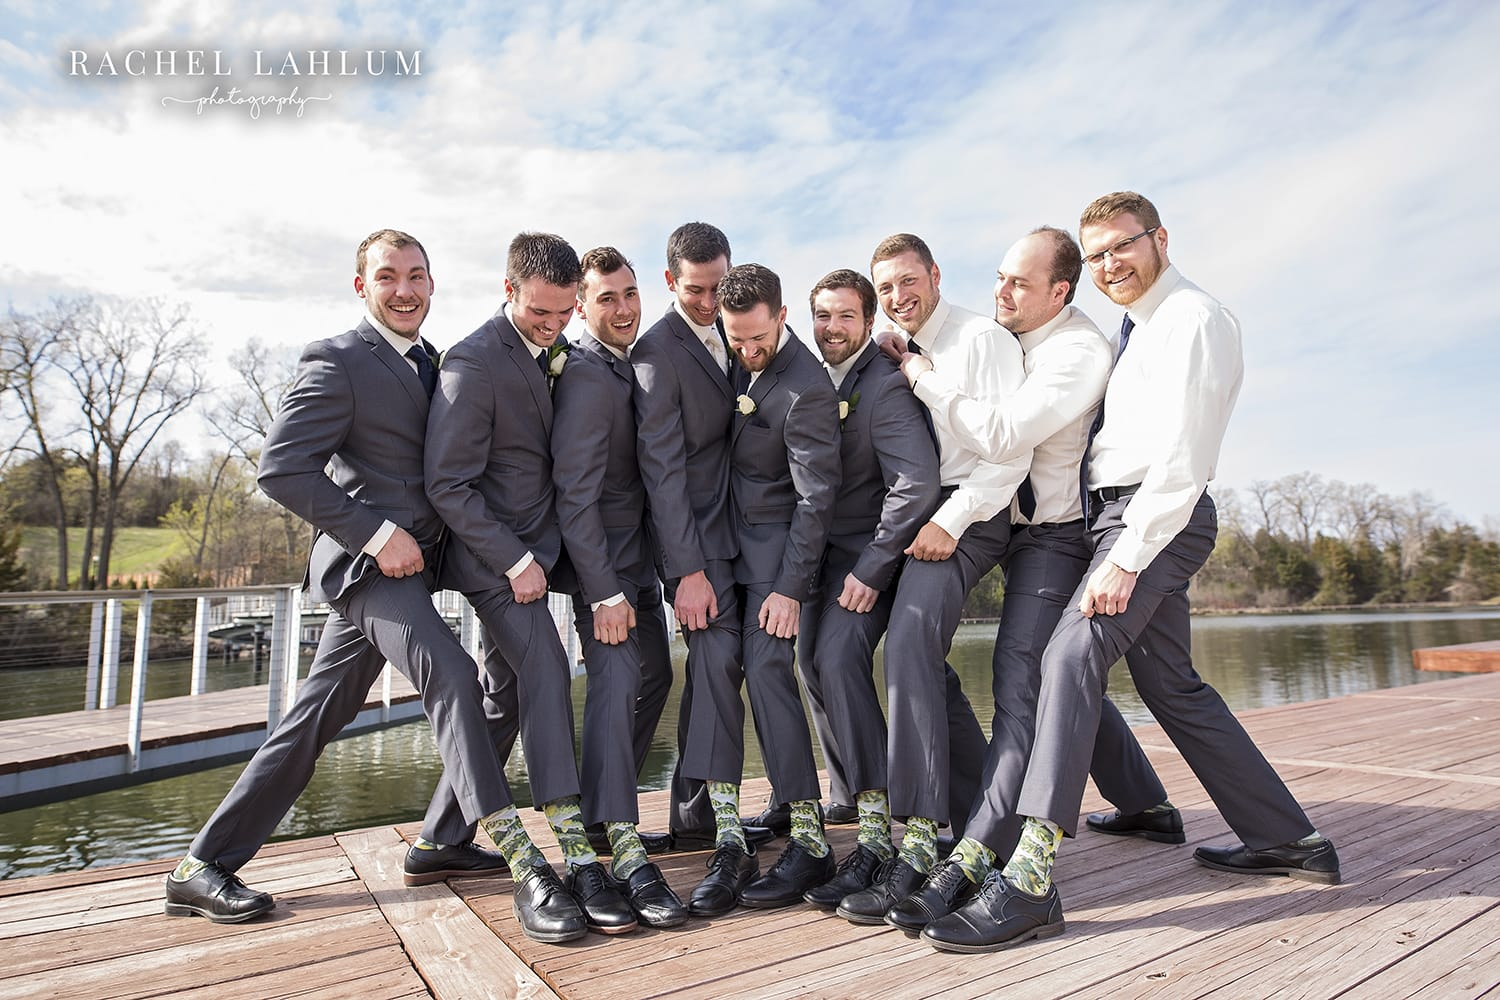 Groom and groomsmen show off their fish socks in Chaska, MN park.